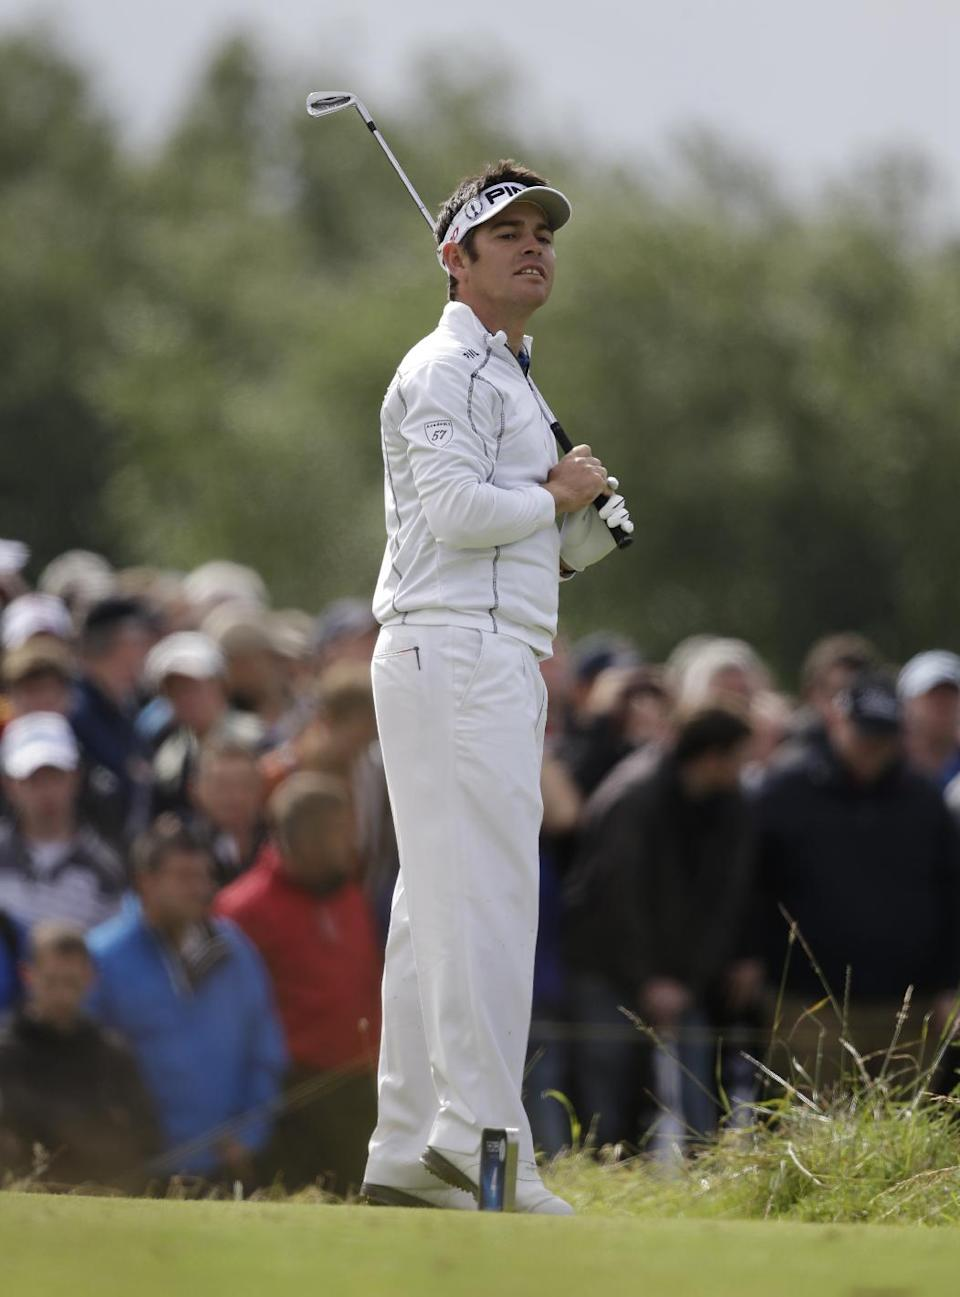 Louis Oosthuizen of South Africa looks for the ball after his shot off the fourth tee at Royal Lytham & St Annes golf club during the second round of the British Open Golf Championship, Lytham St Annes, England, Friday, July 20, 2012. (AP Photo/Tim Hales)